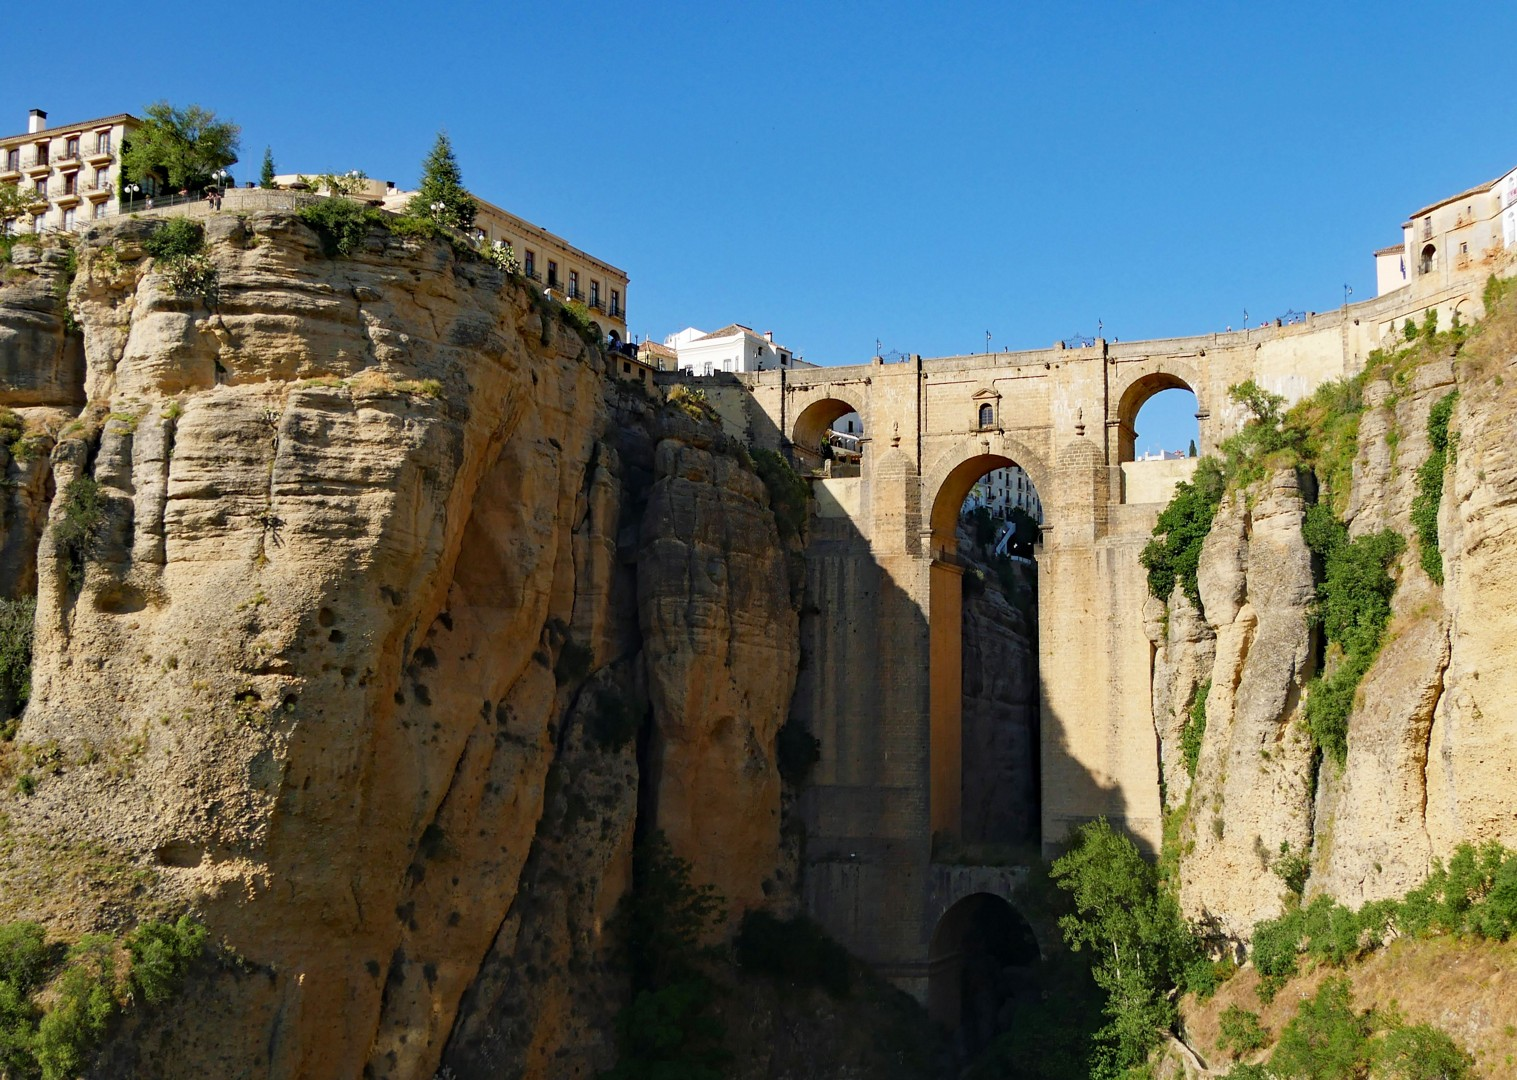 road-cycling-holiday-ronda-spain.jpg - Spain - Del Norte al Sur - Basque Country to Andalucia - Guided Road Cycling Holiday - Road Cycling